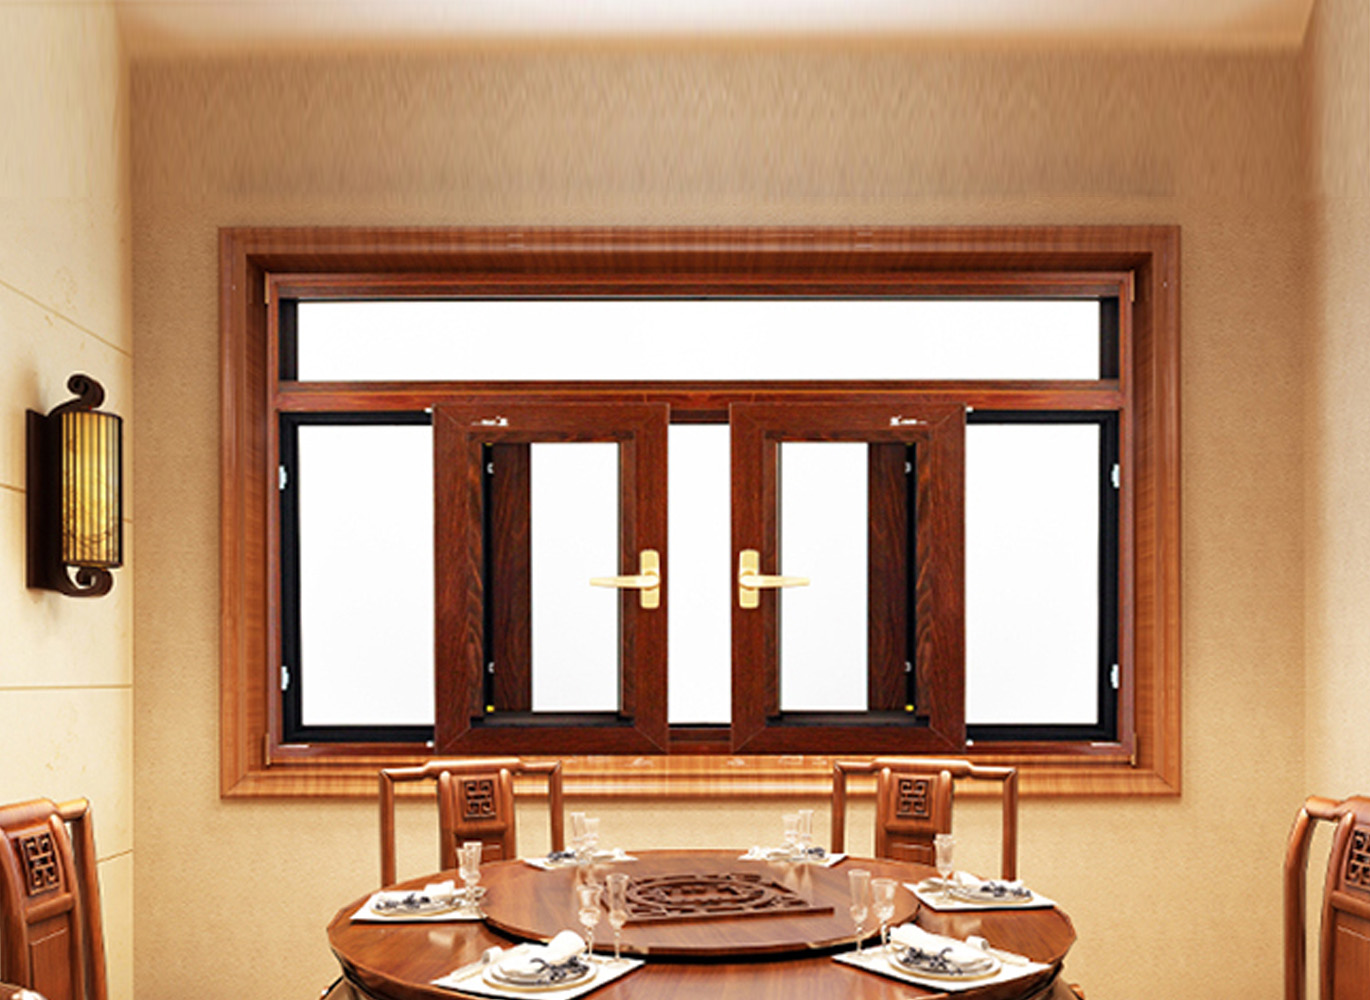 Double Glazing Aluminium Tilt And Slide Windows For House With Best Thermal Acoustic Performance